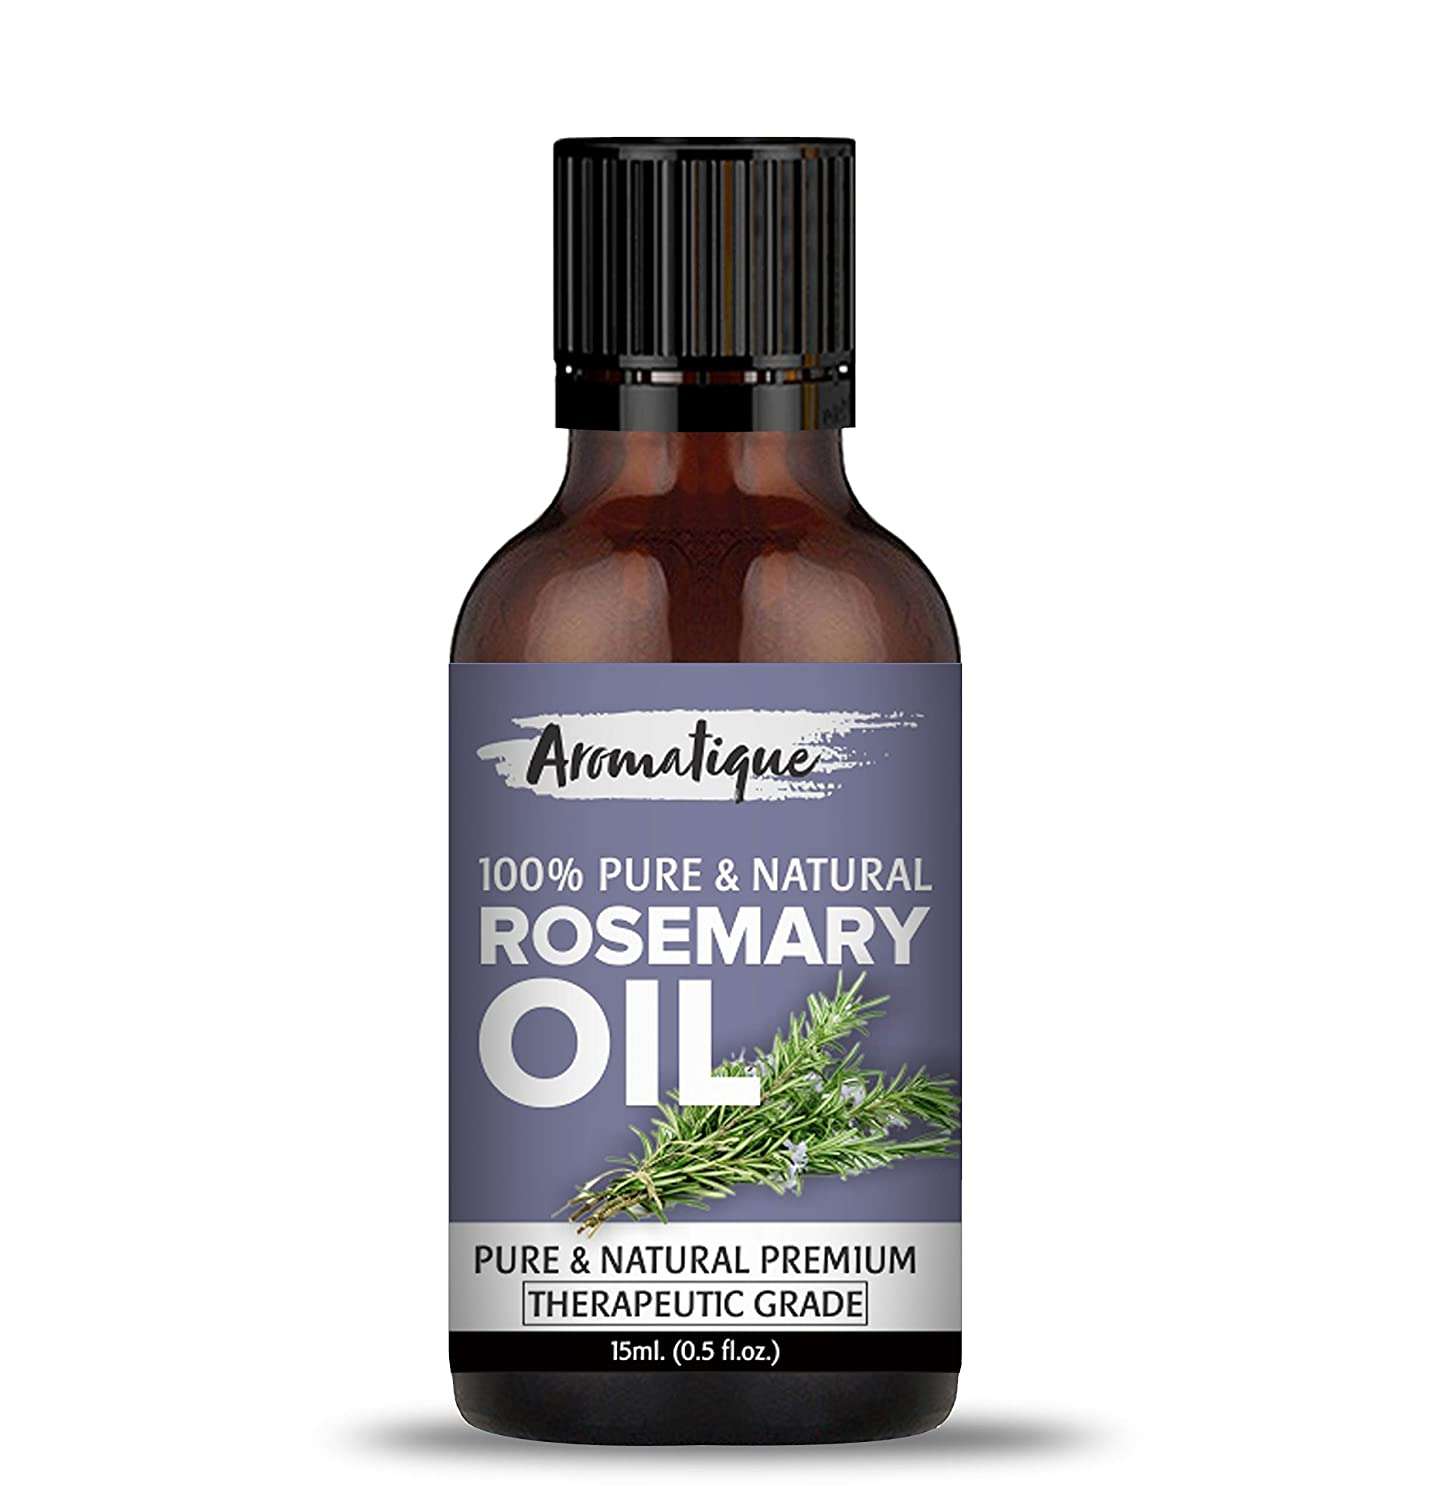 Best Essential Oil Brands 2020.Aromatique Rosemary Essential Oil For Hair Growth Skin And Body 100 Pure And Natural Therapeutic Grade 15ml